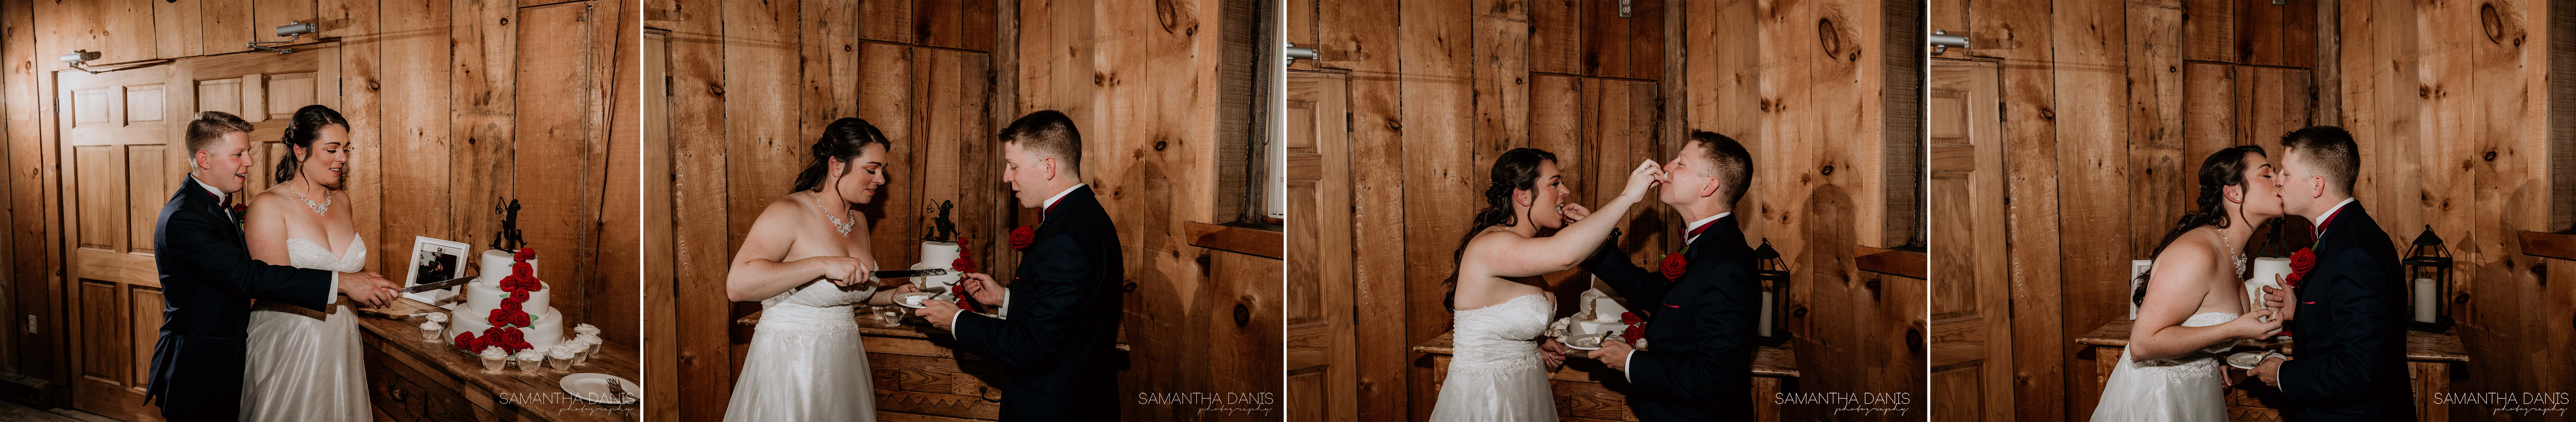 the lodge strathmere fall wedding ottawa Samantha Danis Photography